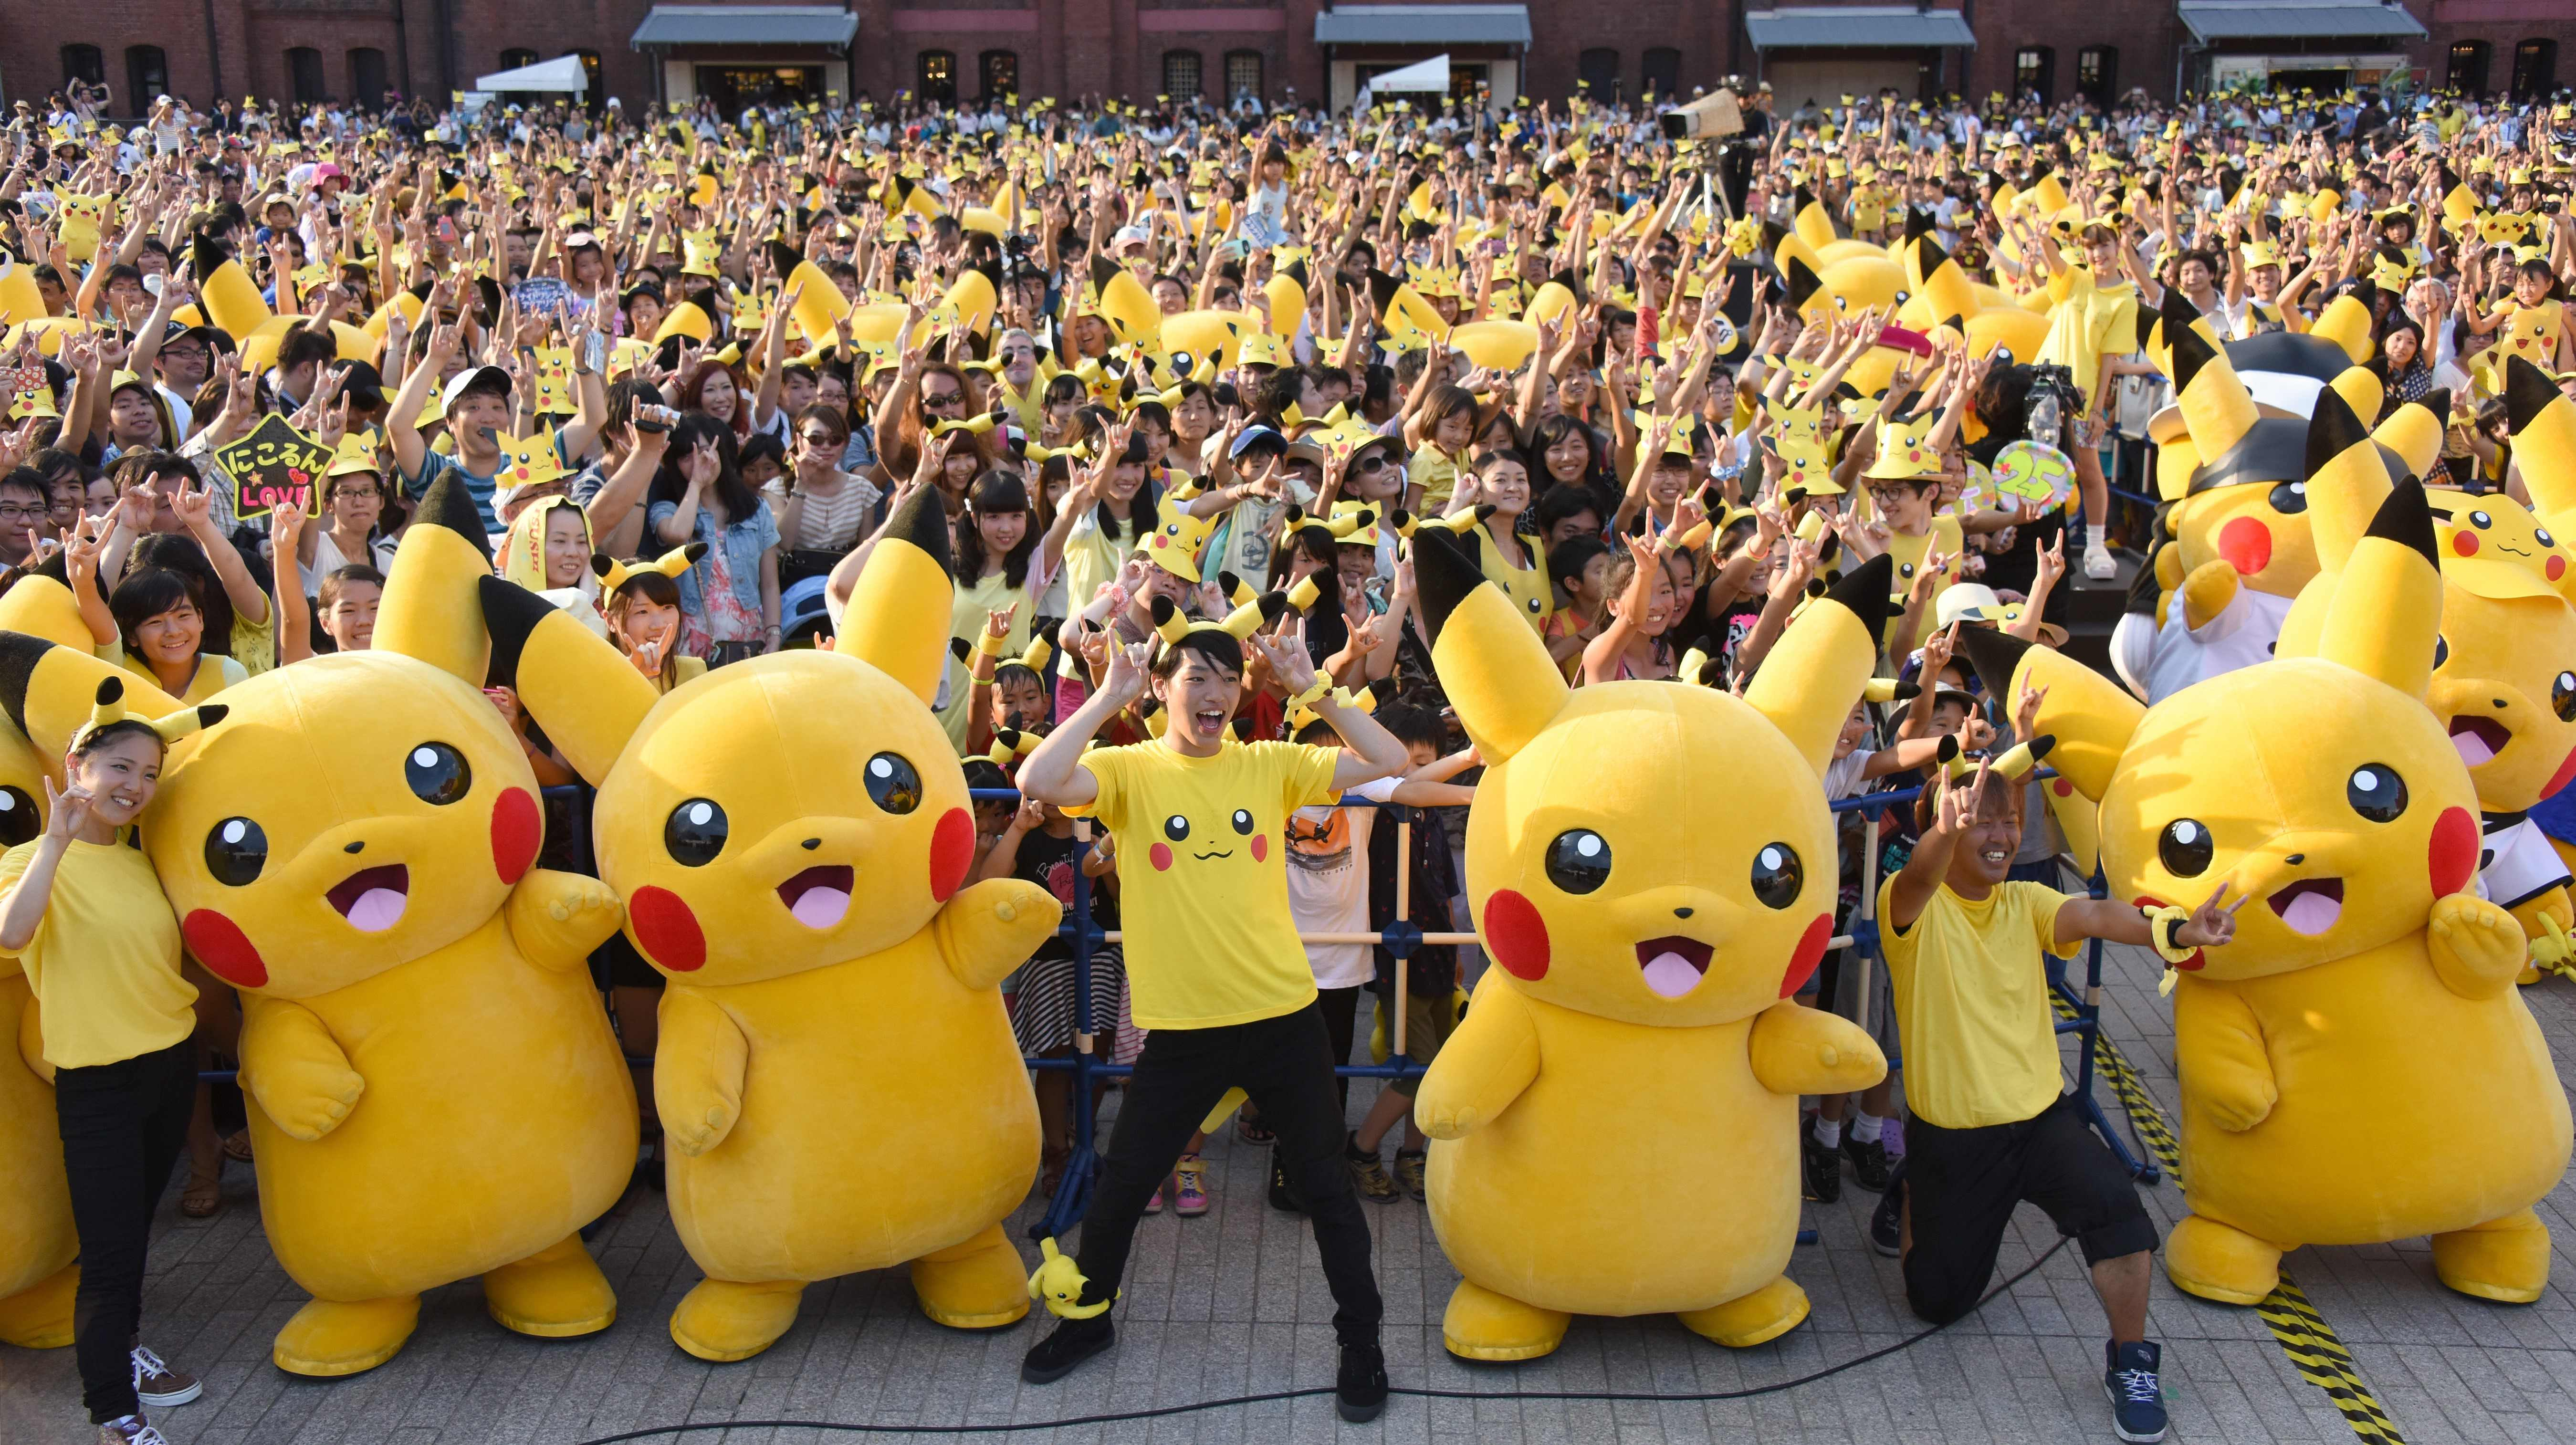 """(FILES) This file picture taken on August 16, 2015 shows dozens of people dressed up as Pikachu, the famous character of Nintendo's videogame software Pokemon, dancing with fans as the final of a nine-day """"Pikachu Outbreak"""" event in Yokohama, in suburban Tokyo. With Pokemon-mania sweeping the planet, Nintendo's nascent shift into mobile gaming has proved a massive hit, vindicating the Japanese videogame giant's decision to unshackle itself from a long-standing consoles-only policy. / AFP PHOTO / TORU YAMANAKA / TO GO WITH Japan-US-IT-Nintendo-Pokemon-lifestyle,FOCUS by Harumi OZAWA"""